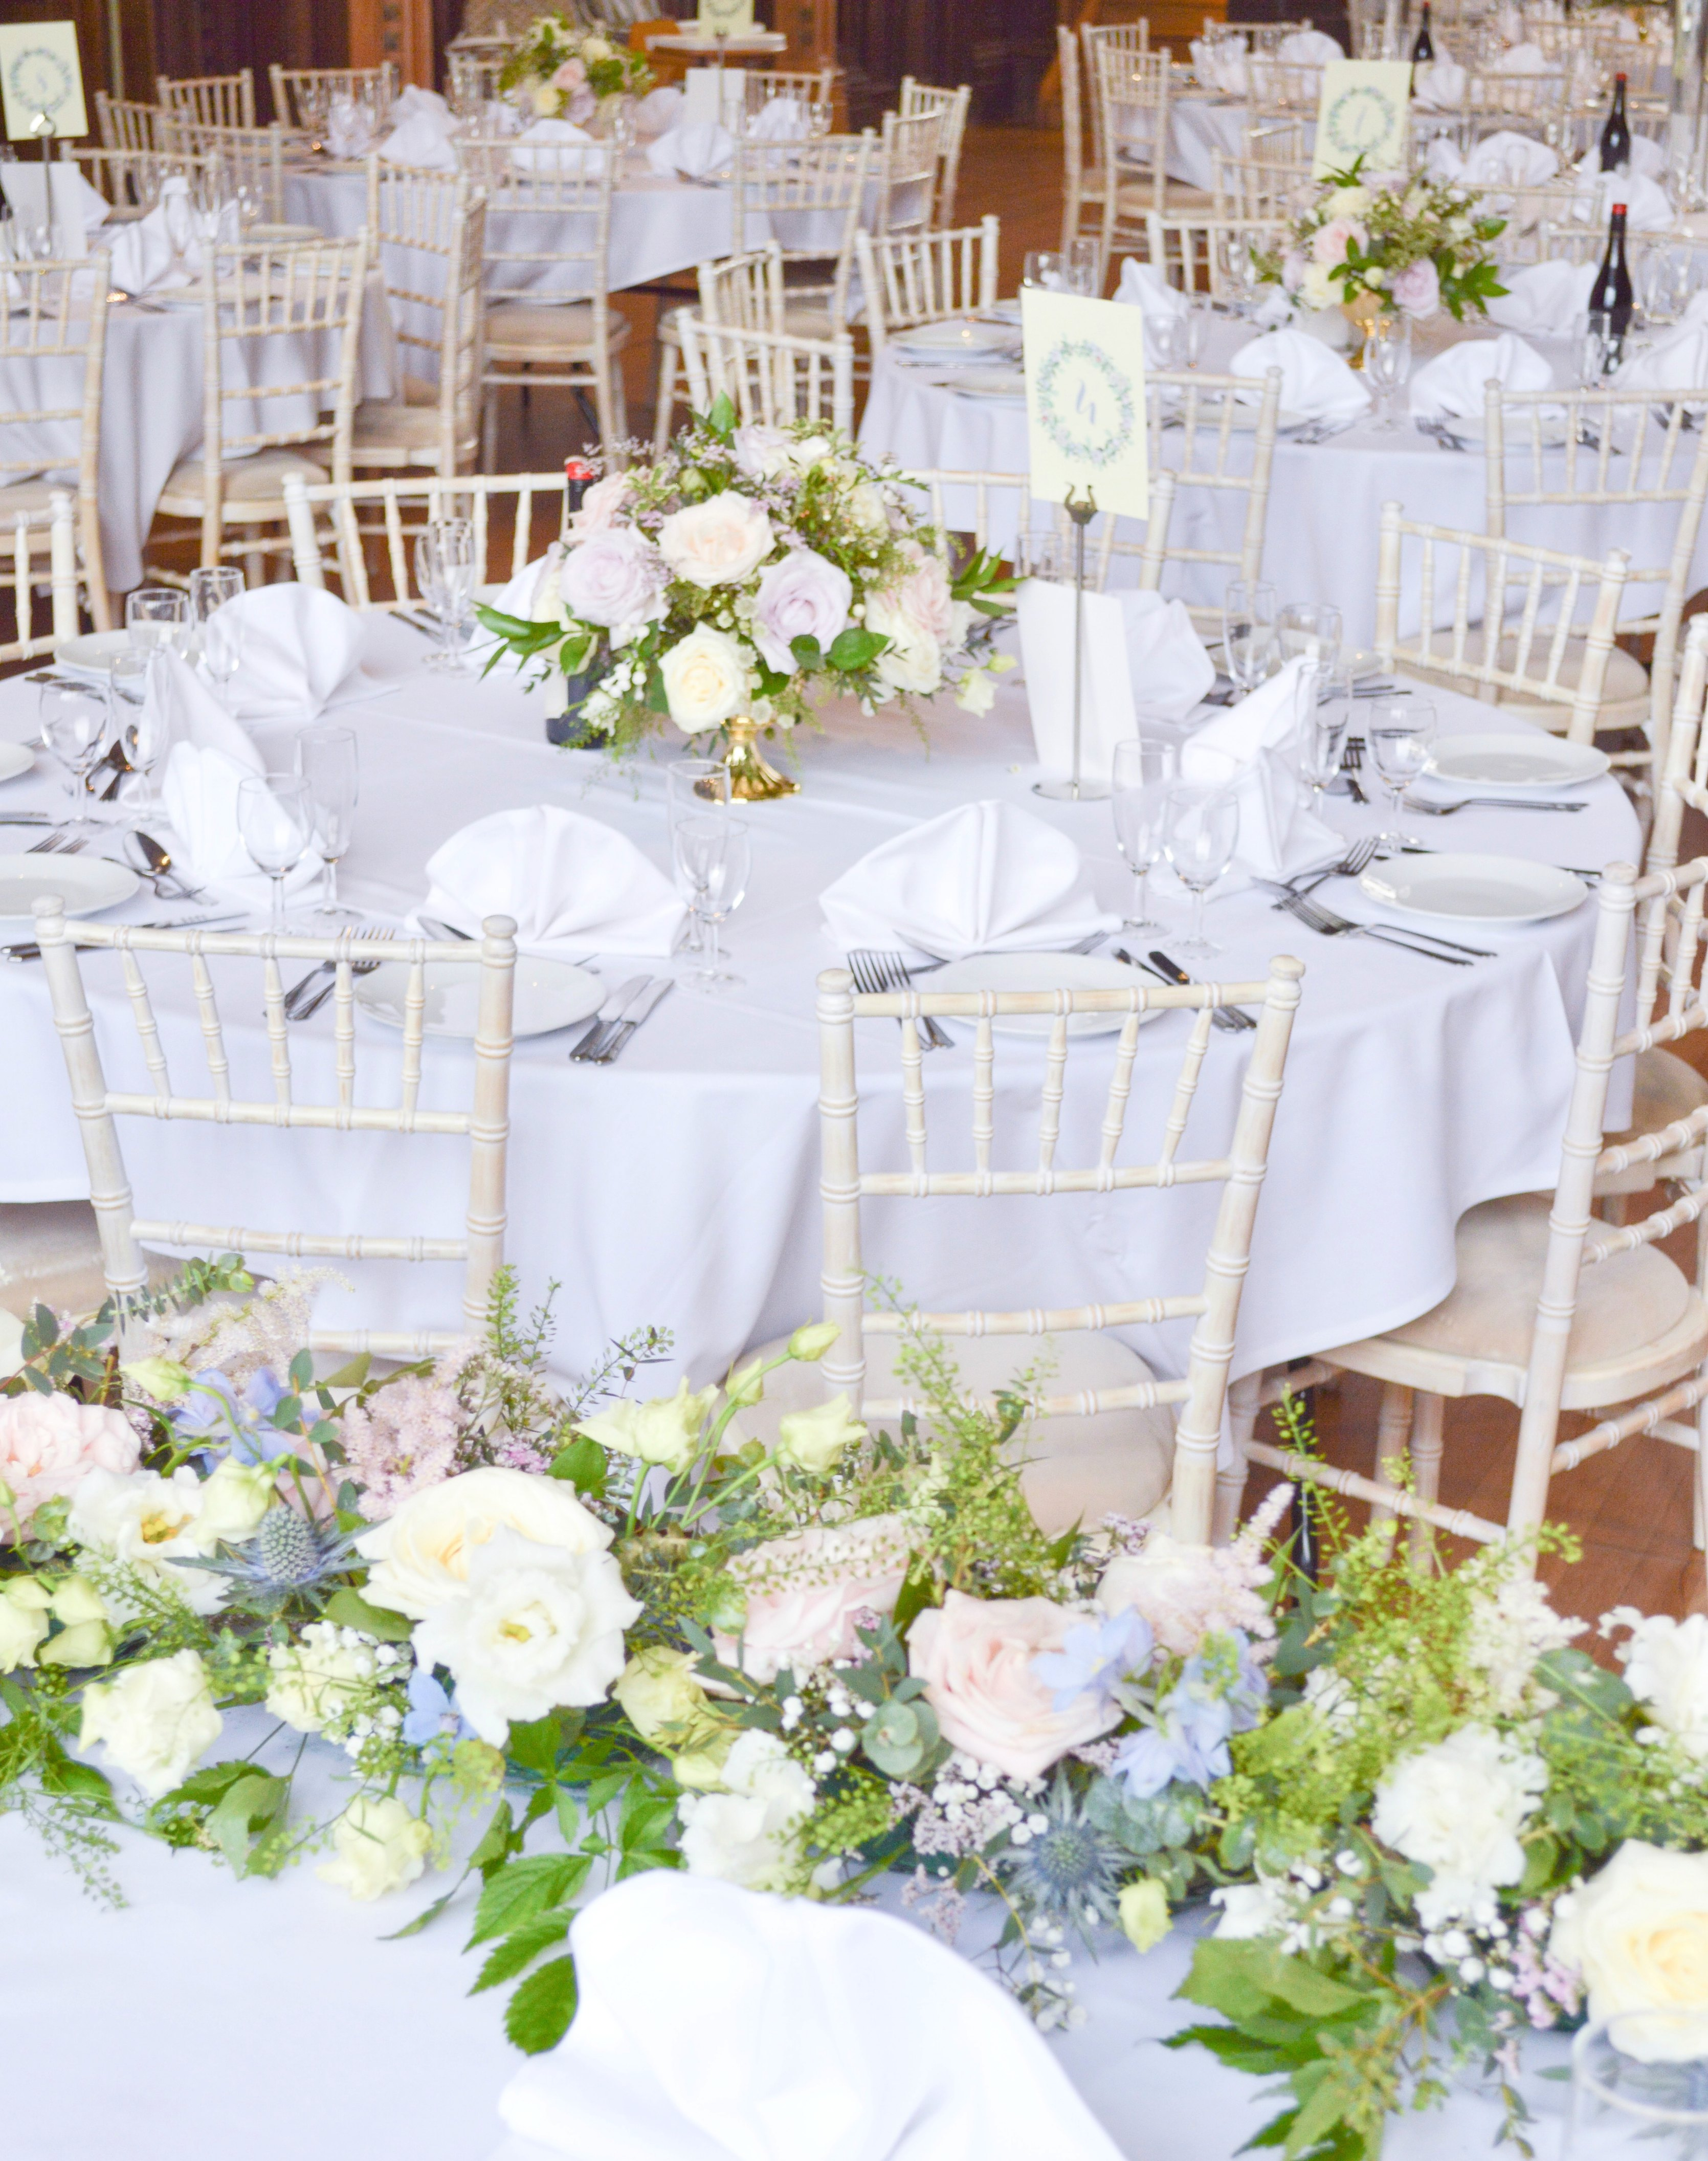 Natural garden rustic style spring pastel pink blue lilac head top table flower garland wedding reception centrepieces Dulwich College Cherie Kelly wedding flowers London